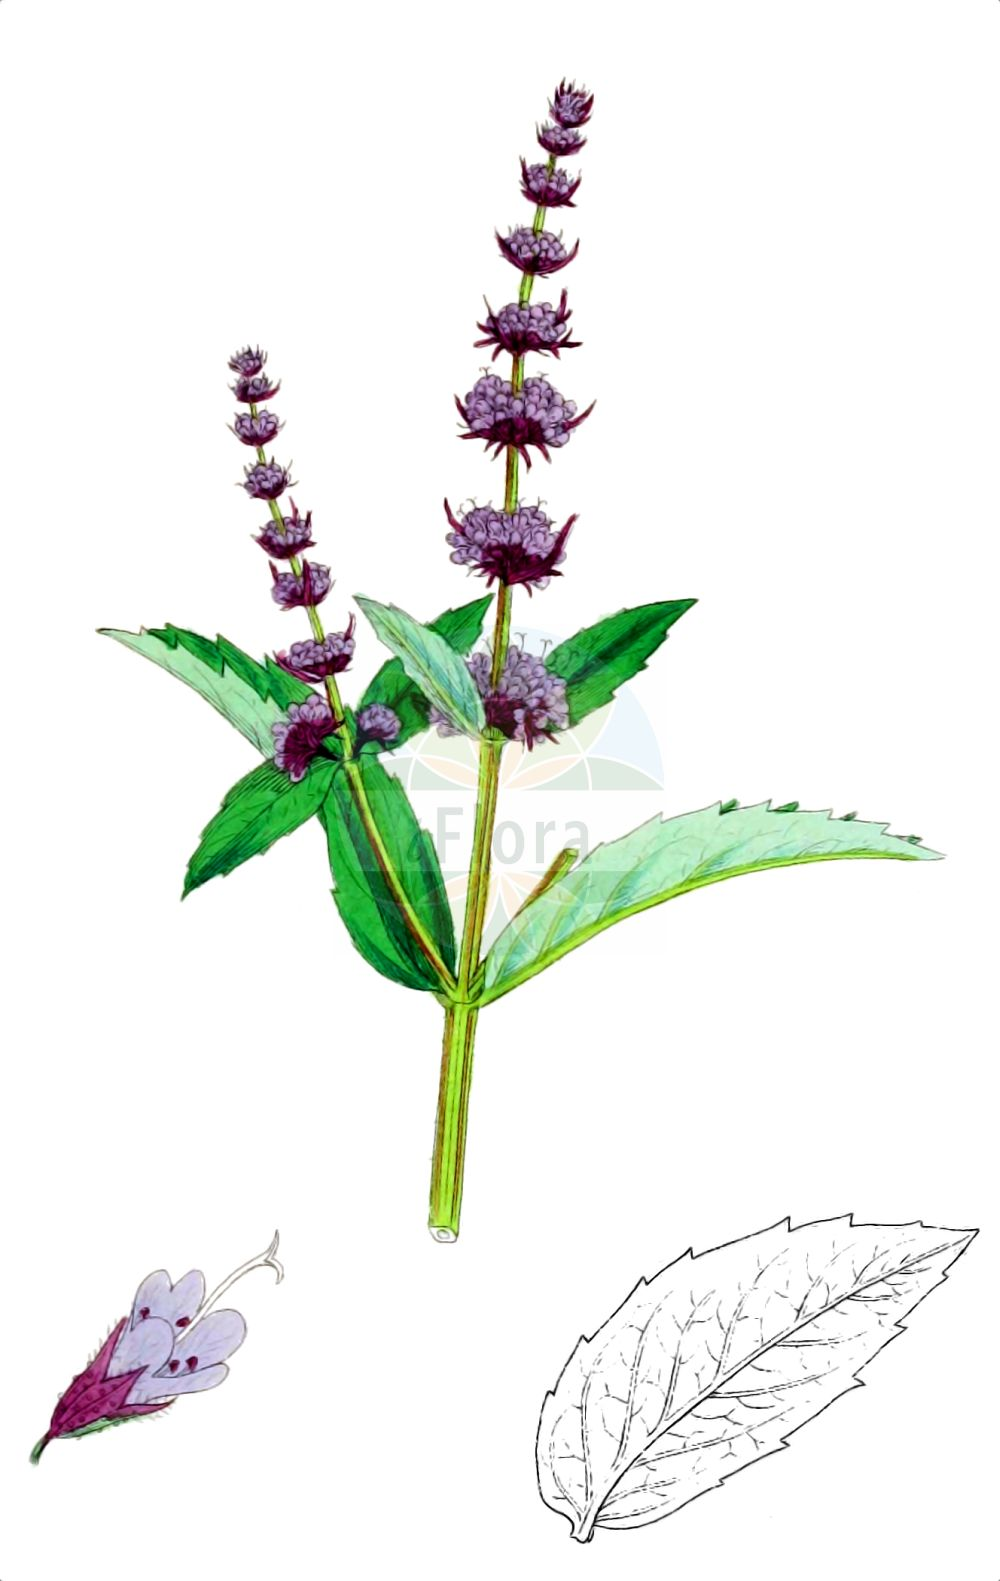 Historische Abbildung von Mentha spicata (Ähren-Minze - Spear Mint). Das Bild zeigt Blatt, Bluete, Frucht und Same. ---- Historical Drawing of Mentha spicata (Ähren-Minze - Spear Mint).The image is showing leaf, flower, fruit and seed.(Mentha spicata,Ähren-Minze,Spear Mint,Mentha spicata,Ähren-Minze,Spear Mint,Round-leaved Mint,Mentha,Minze,Mint,Lamiaceae,Lippenbluetengewaechse,Lippenbluetler,Nettle family,Blatt,Bluete,Frucht,Same,leaf,flower,fruit,seed,Sowerby (1790-1813))